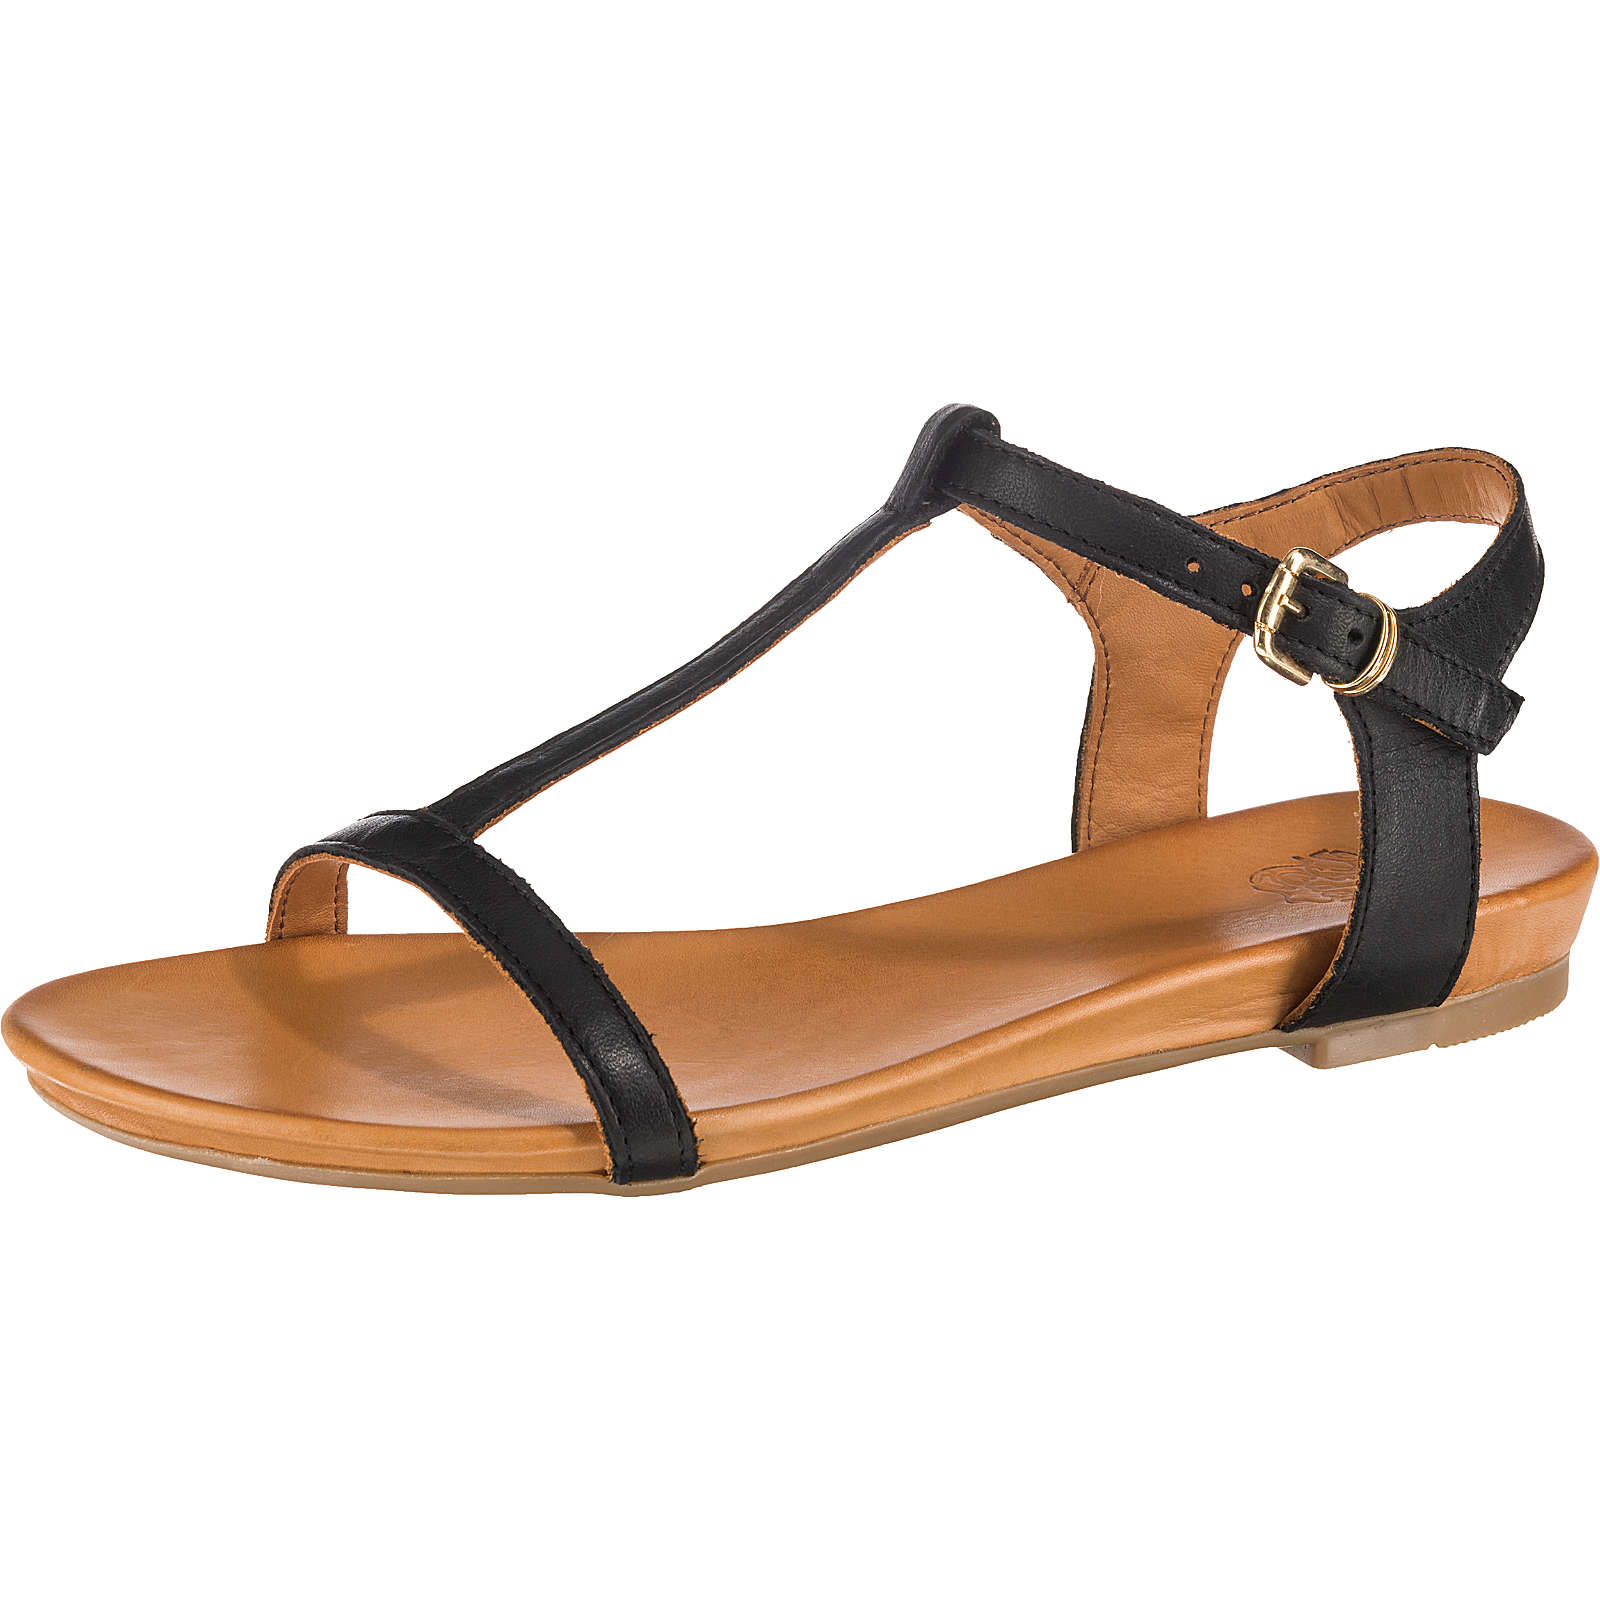 Apple of Eden Dora T-Steg-Sandalen schwarz Damen Gr. 38